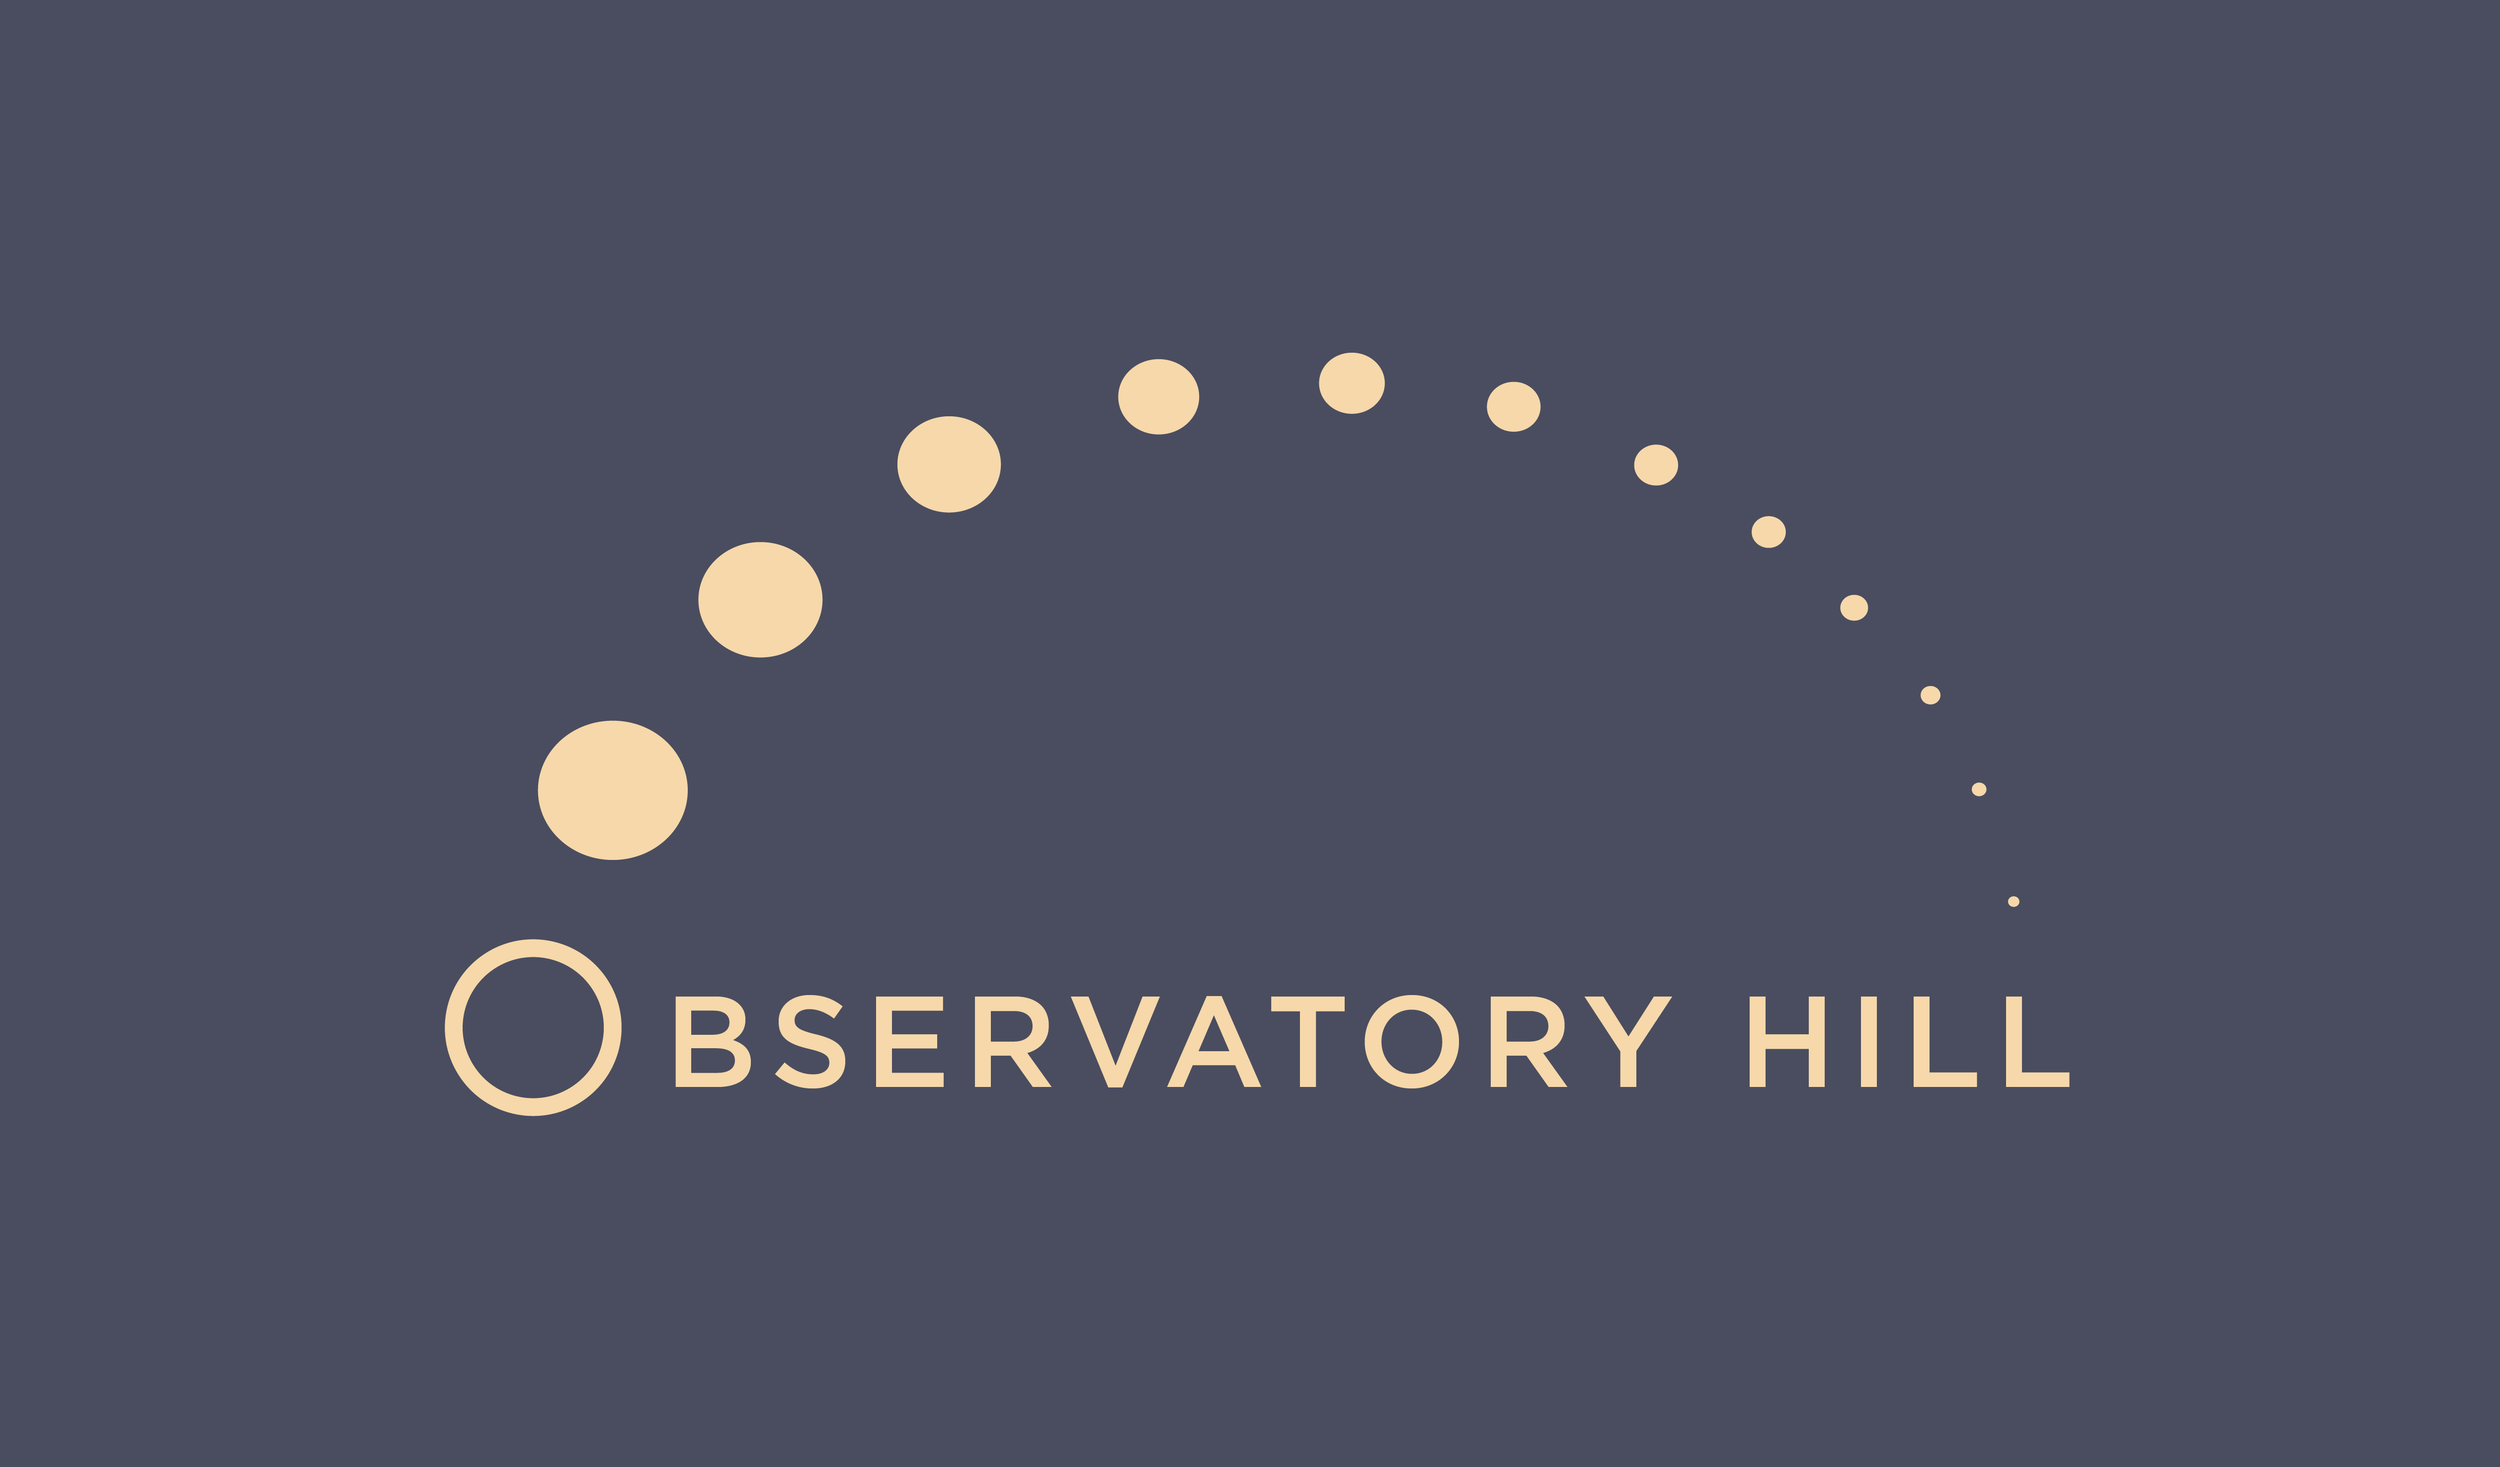 obs_hill_front-07-07.png